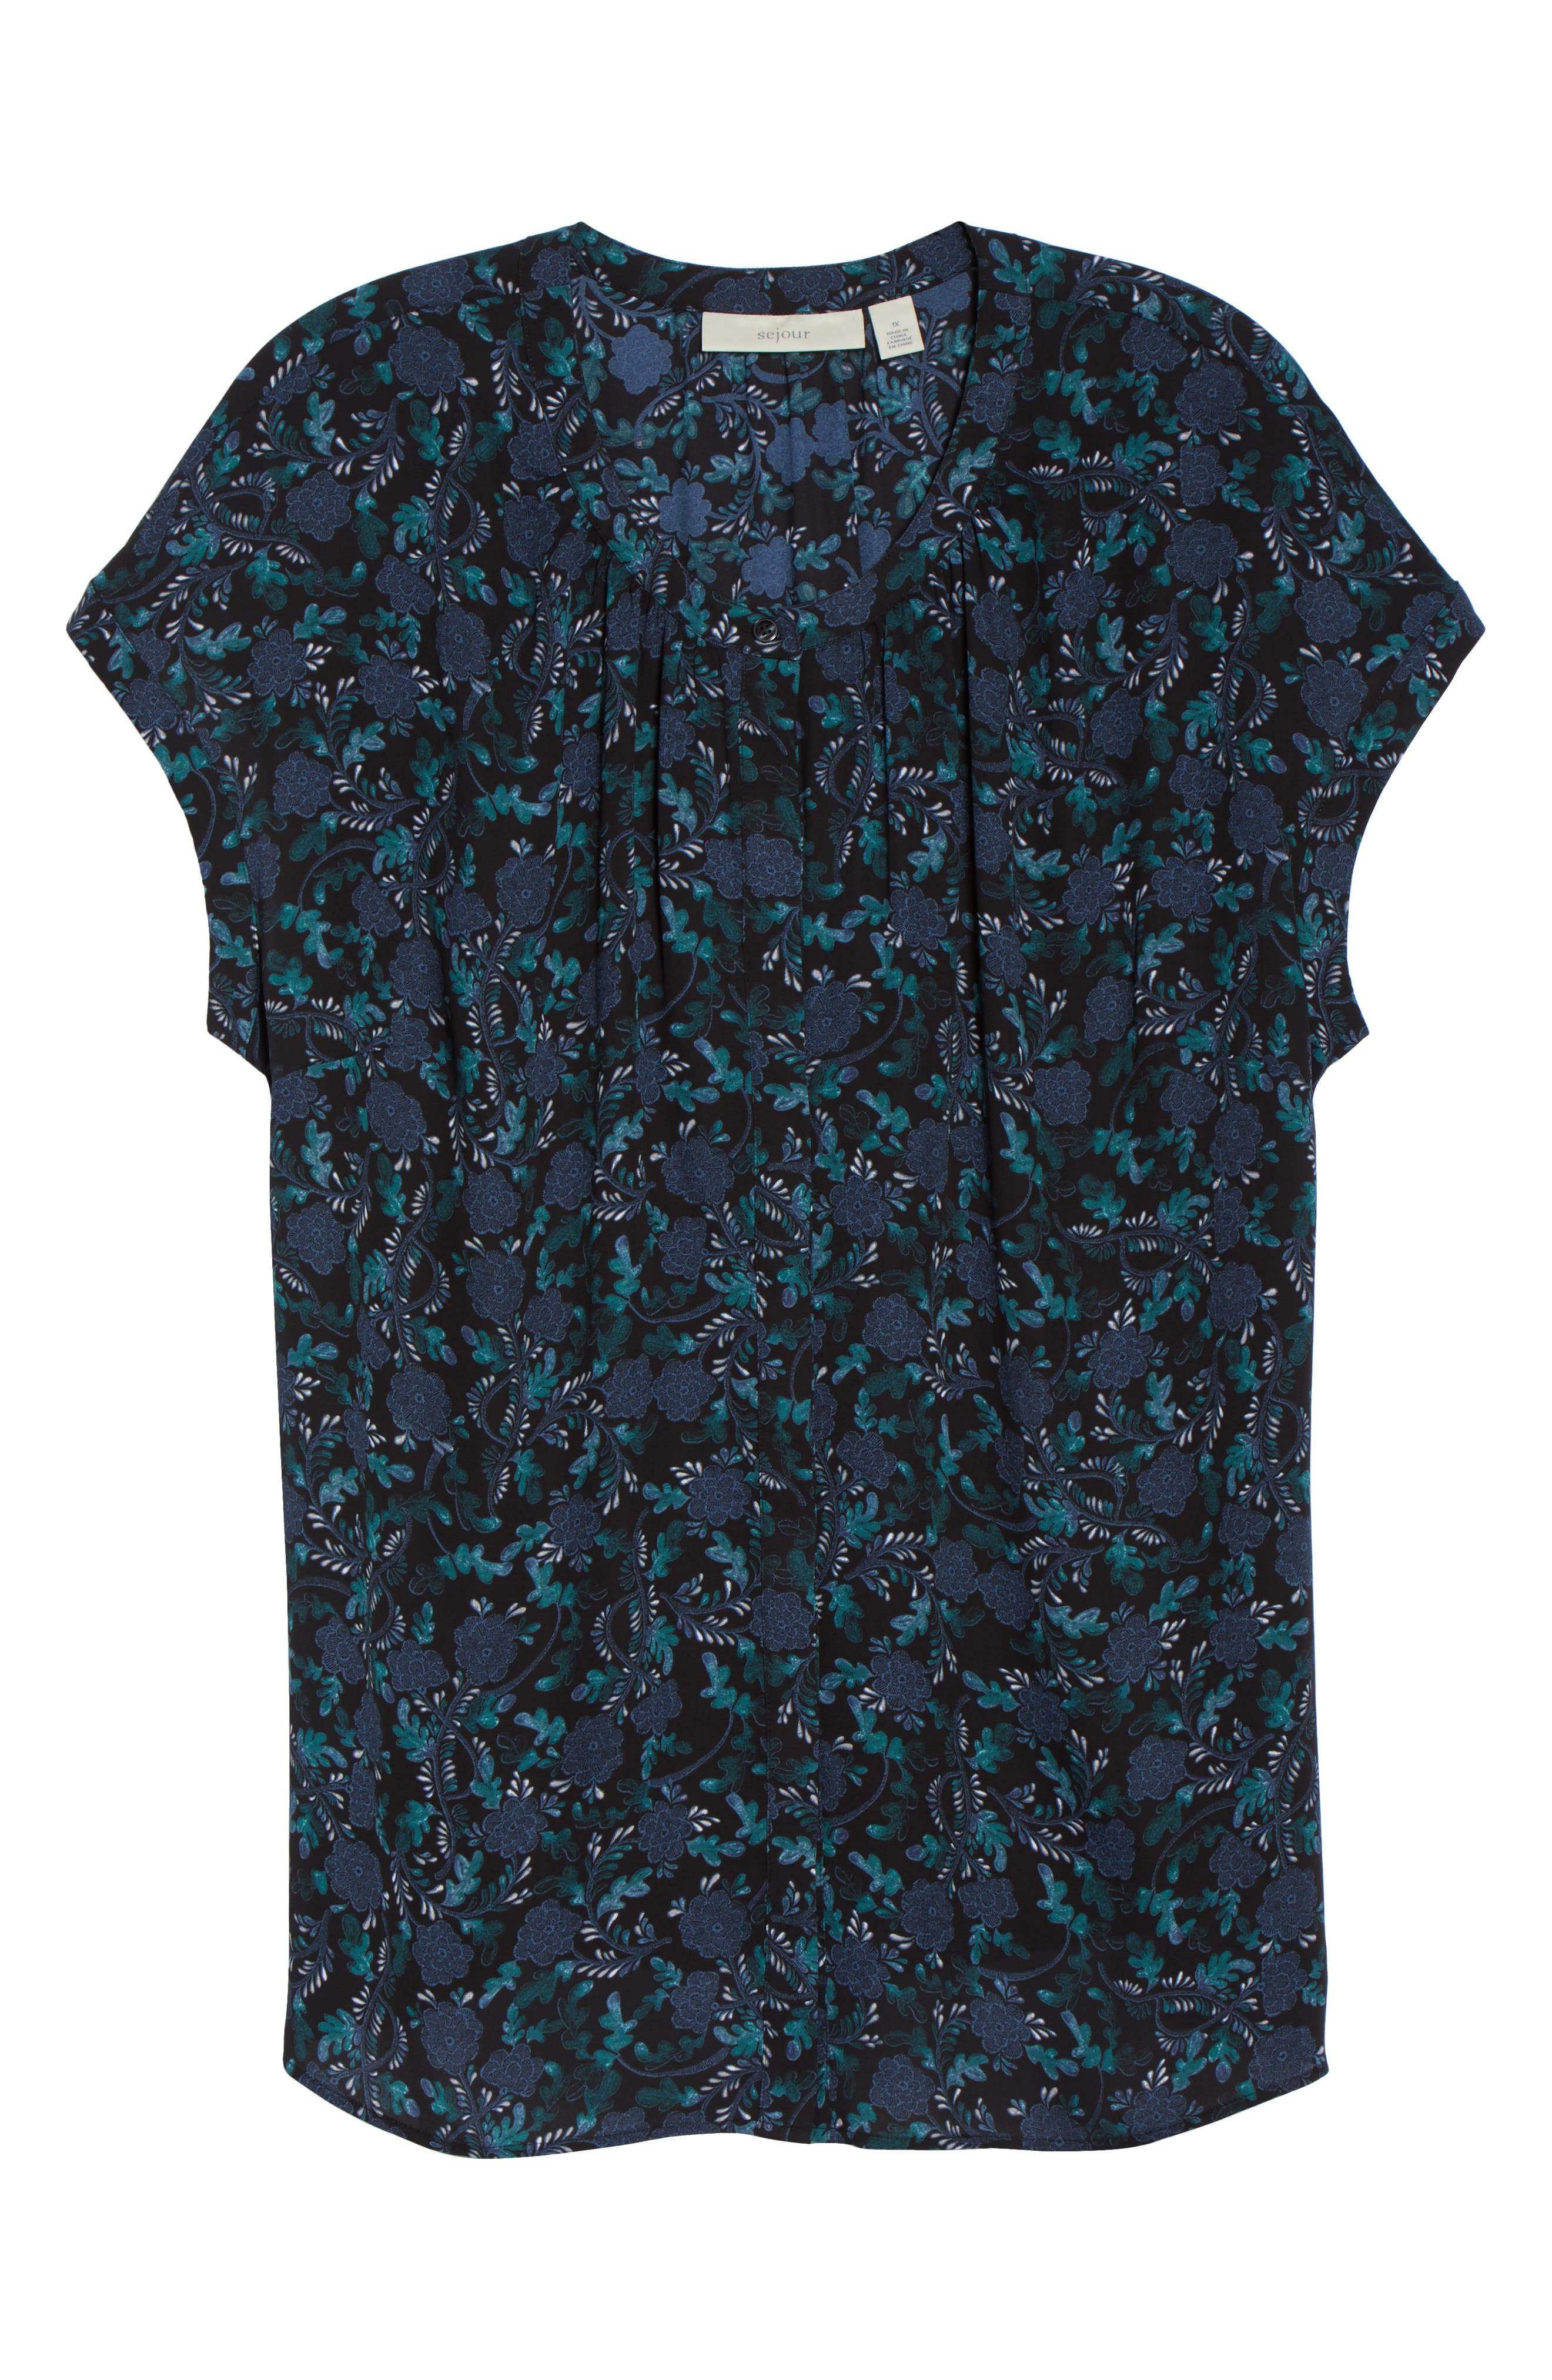 Gathered Neck Button Down Top,                             Alternate thumbnail 6, color,                             BLACK- GREEN FLORAL PRINT